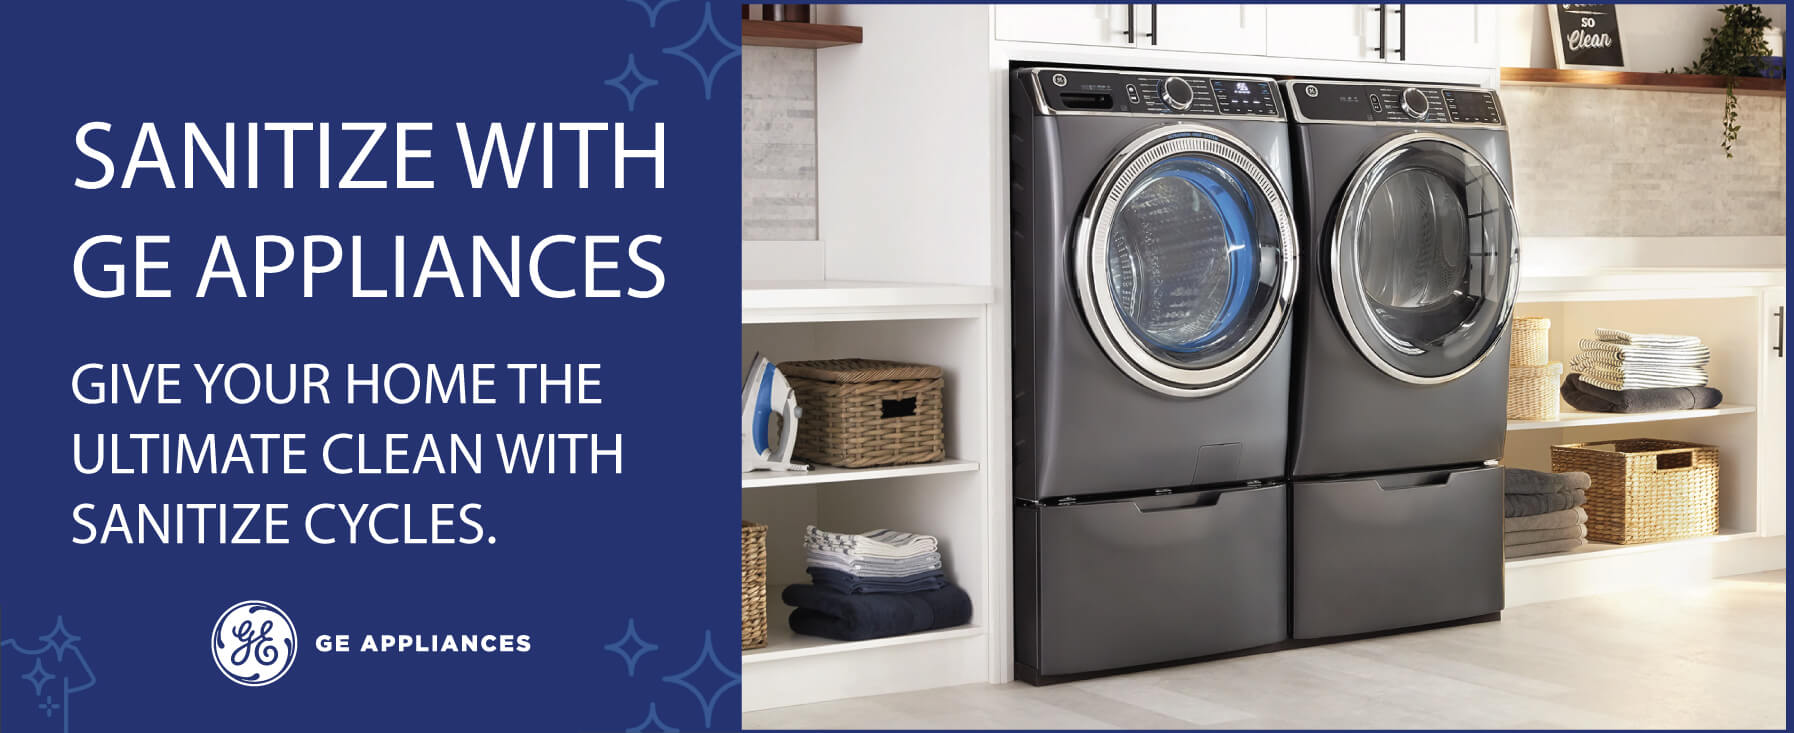 Sanitize with GE Appliances